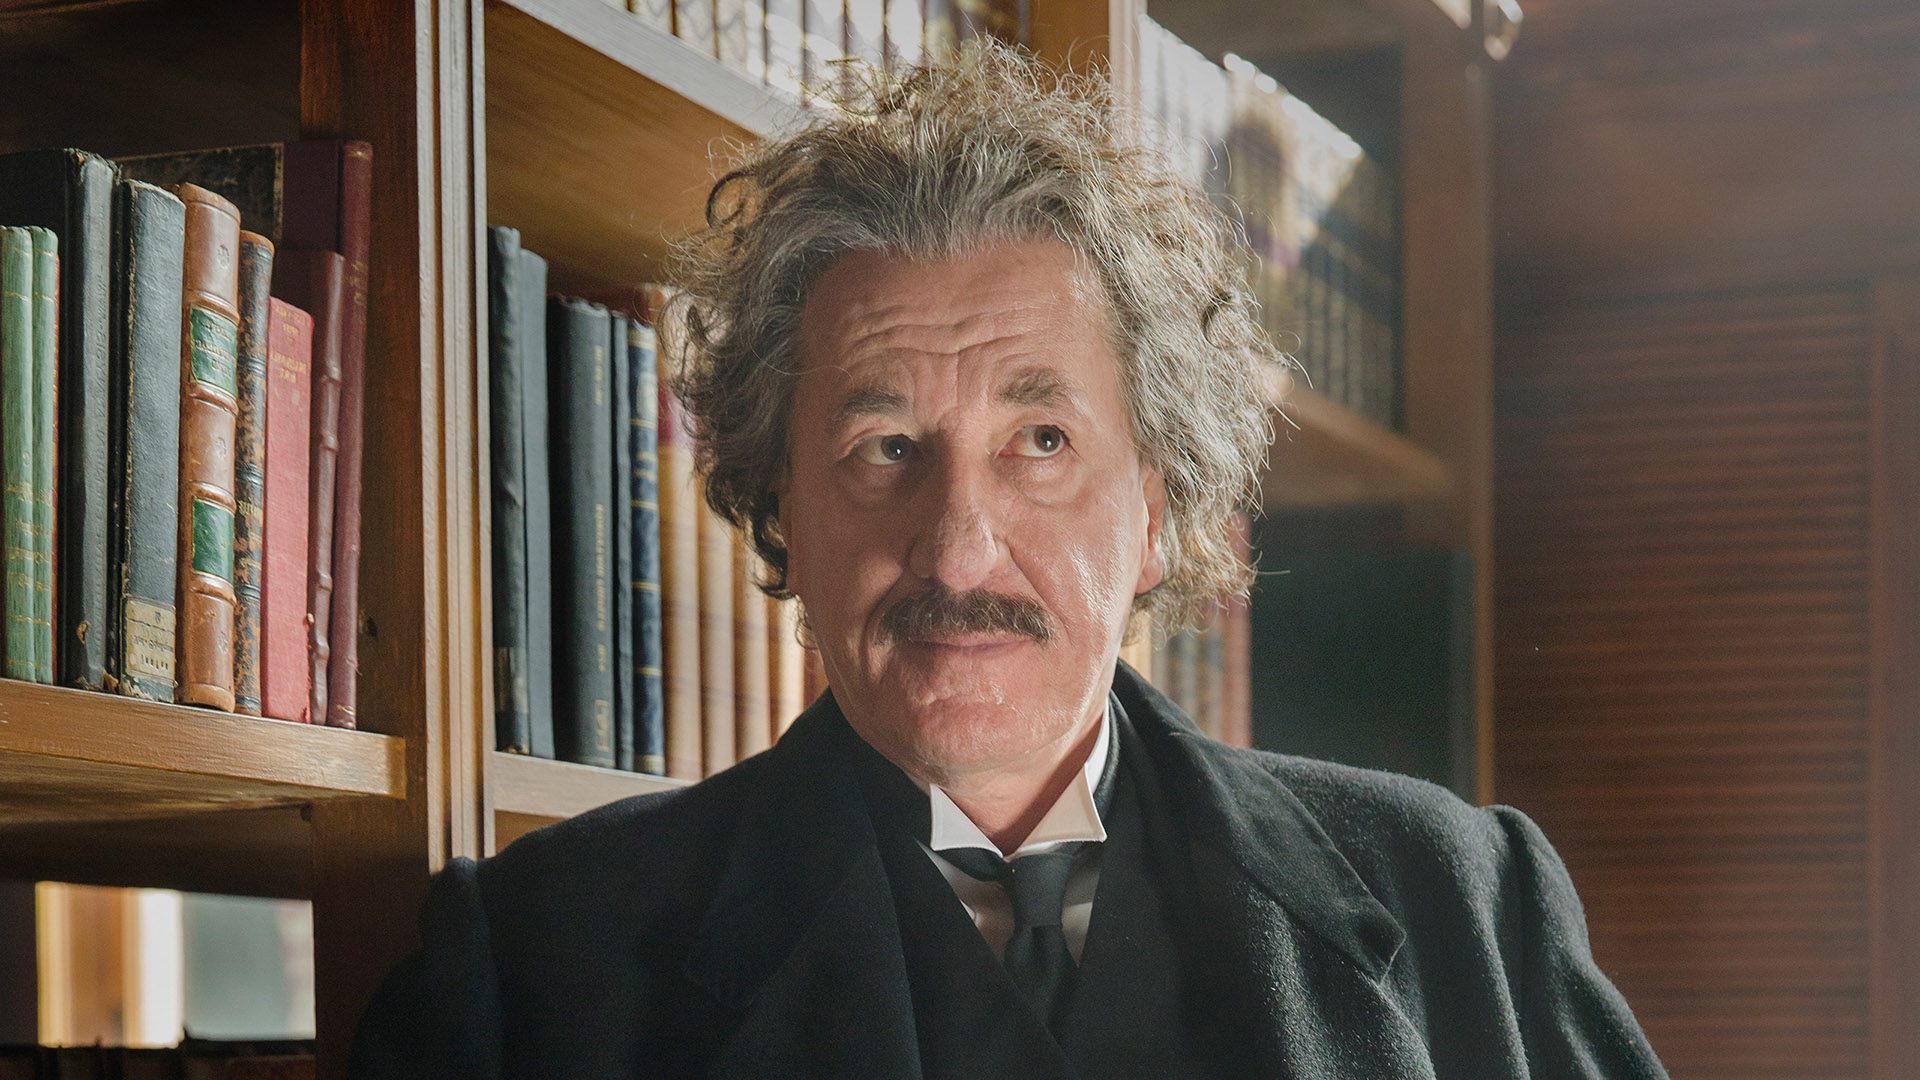 NatGeo's 'Genius' shows us a deeply flawed Albert Einstein